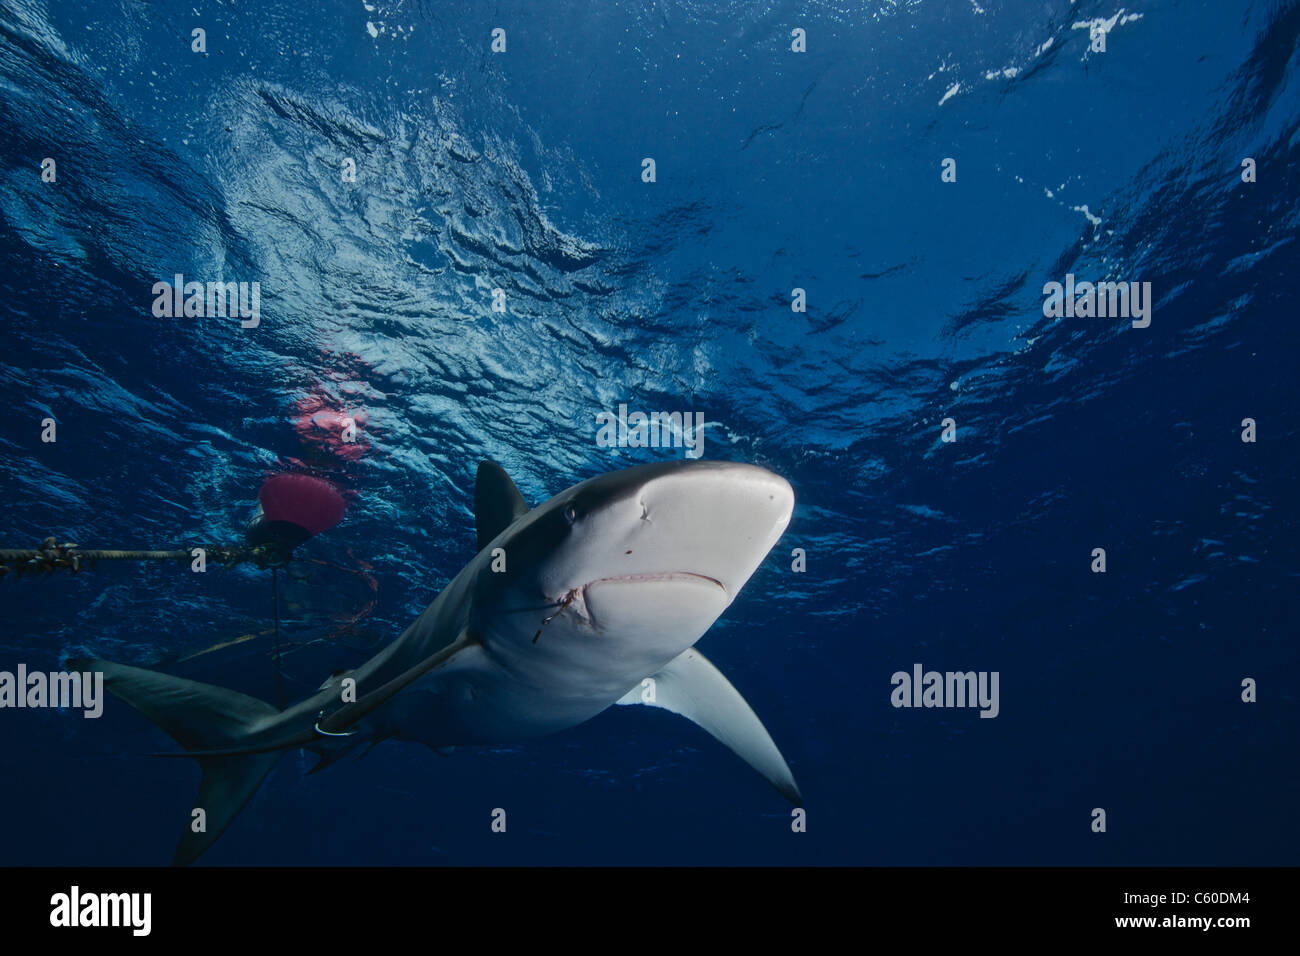 Galapagos shark with fishing hooks in its mouth - Stock Image